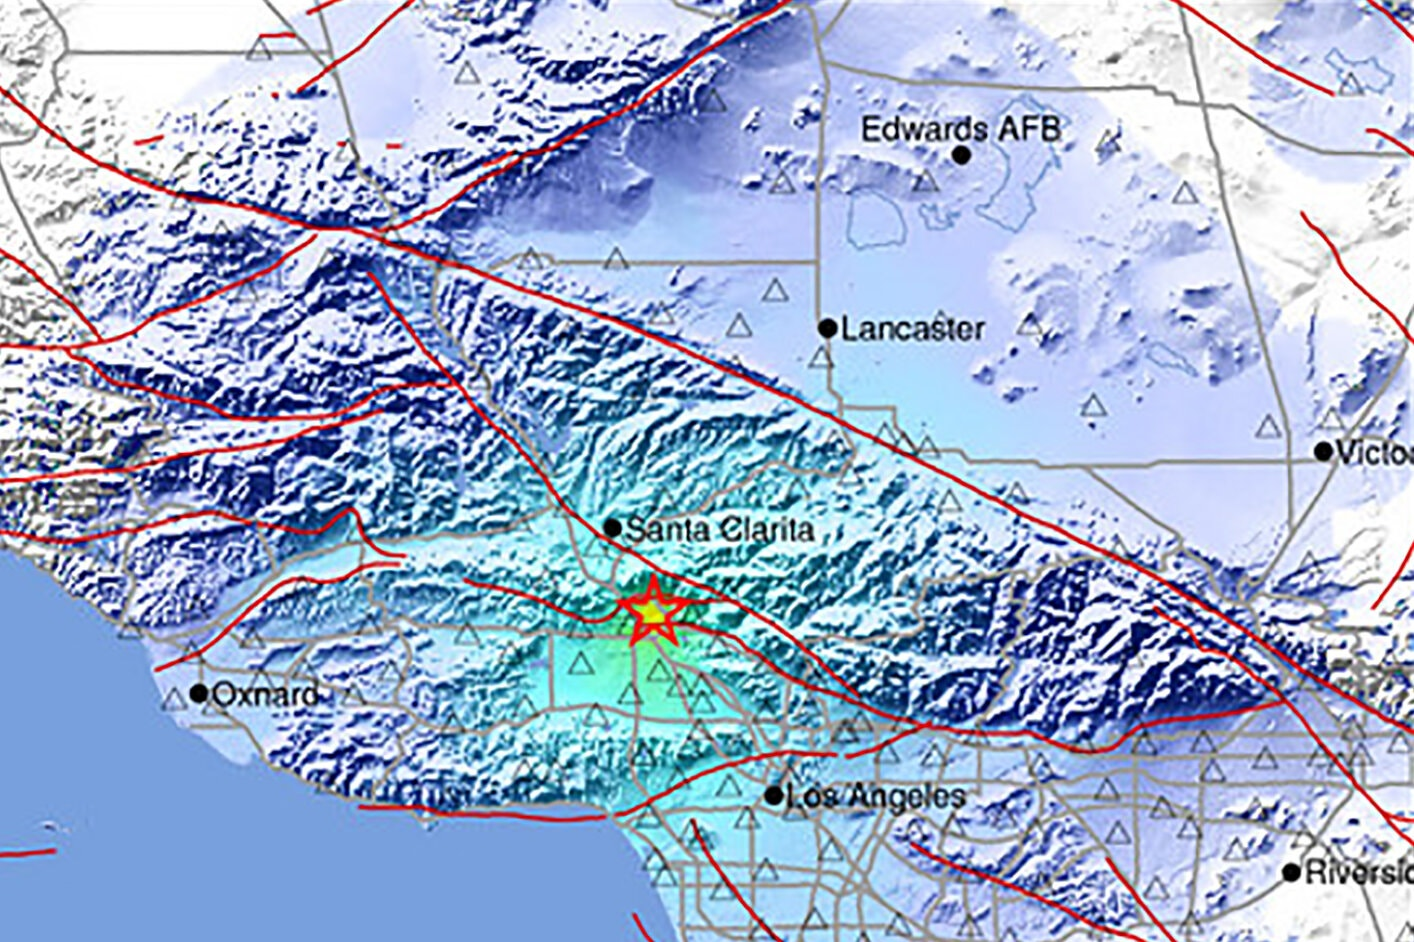 4.2-Magnitude Earthquake Hits Near Los Angeles